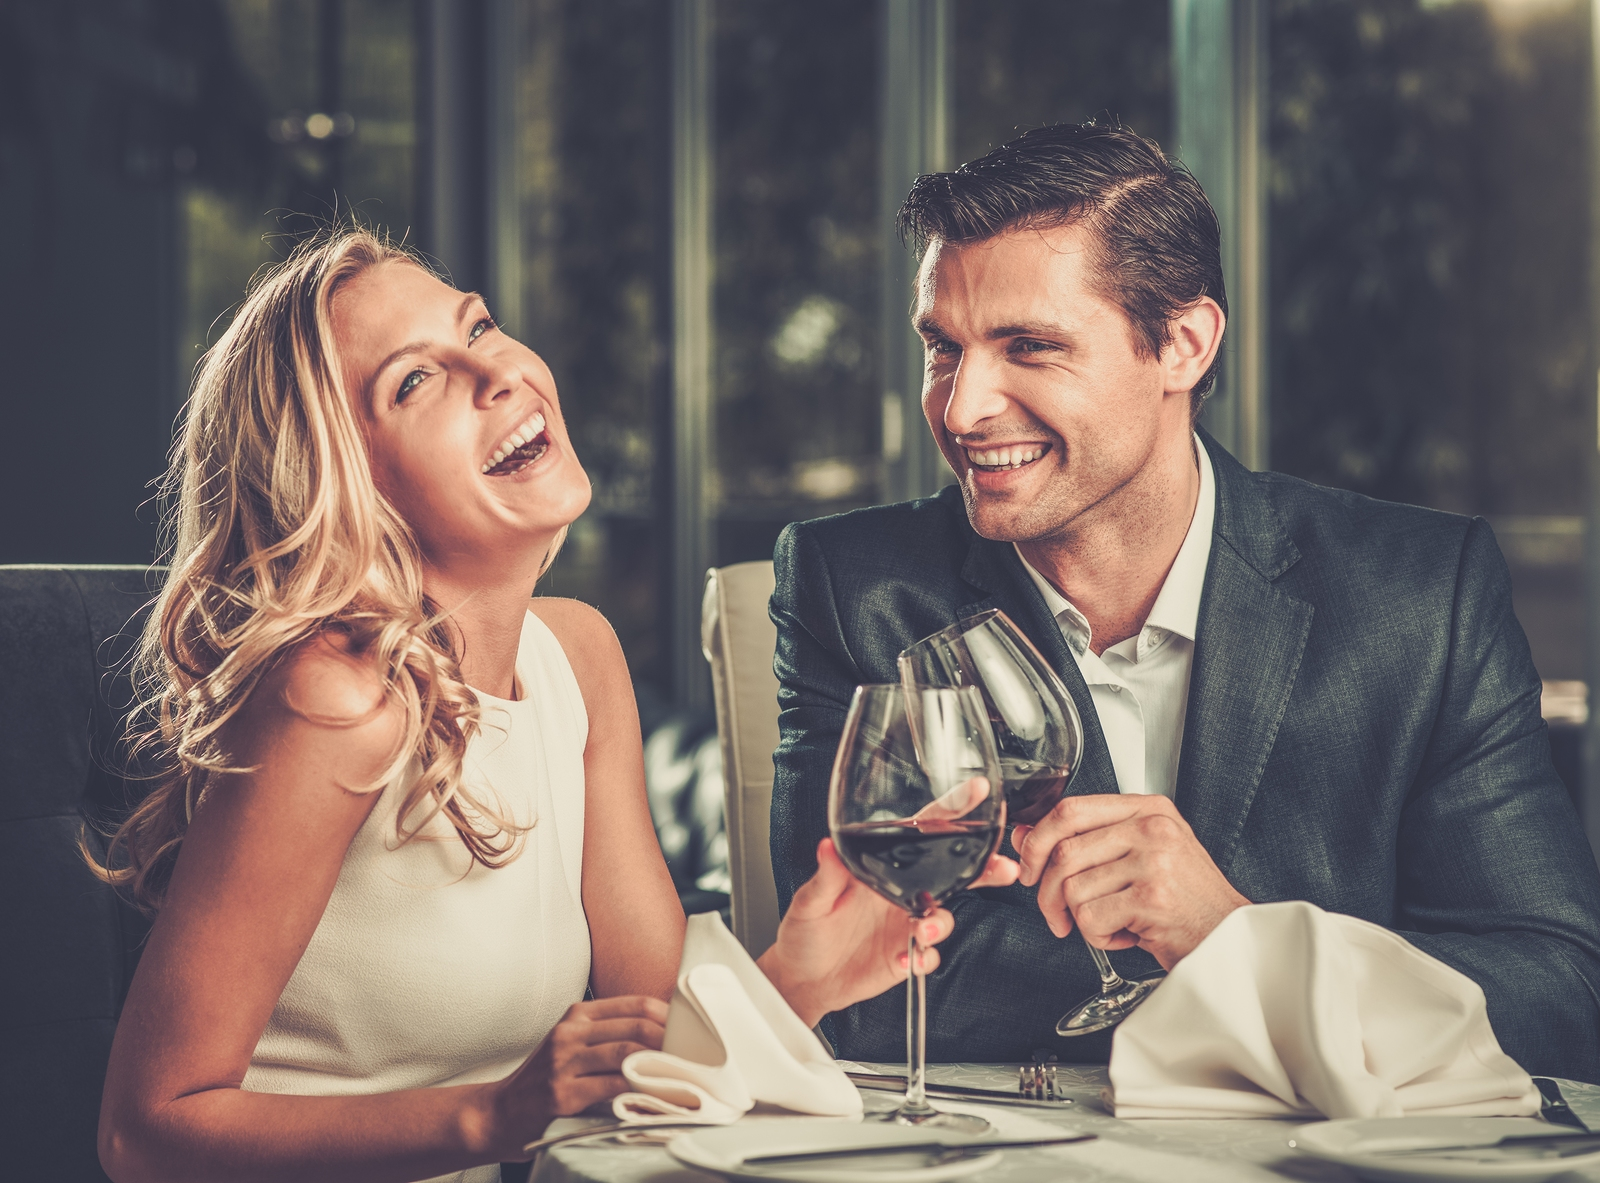 Best Of The West Wine Night Like Speed Dating For Wine Lovers